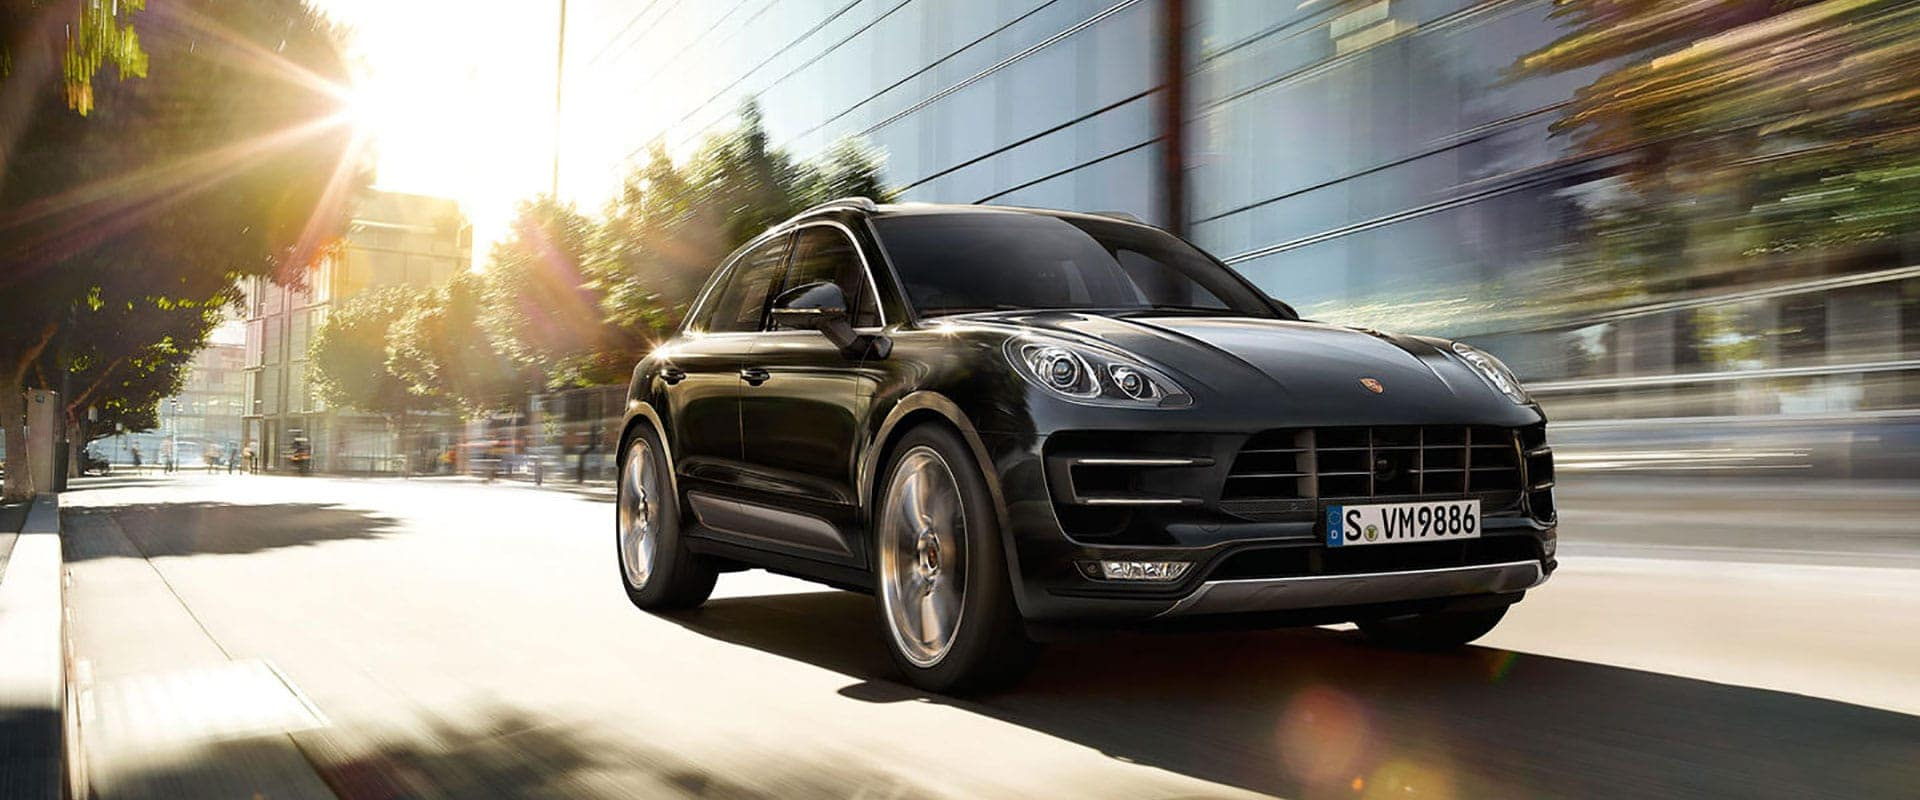 2018 Porsche Macan Suv Model Review Specs Pricing Trims